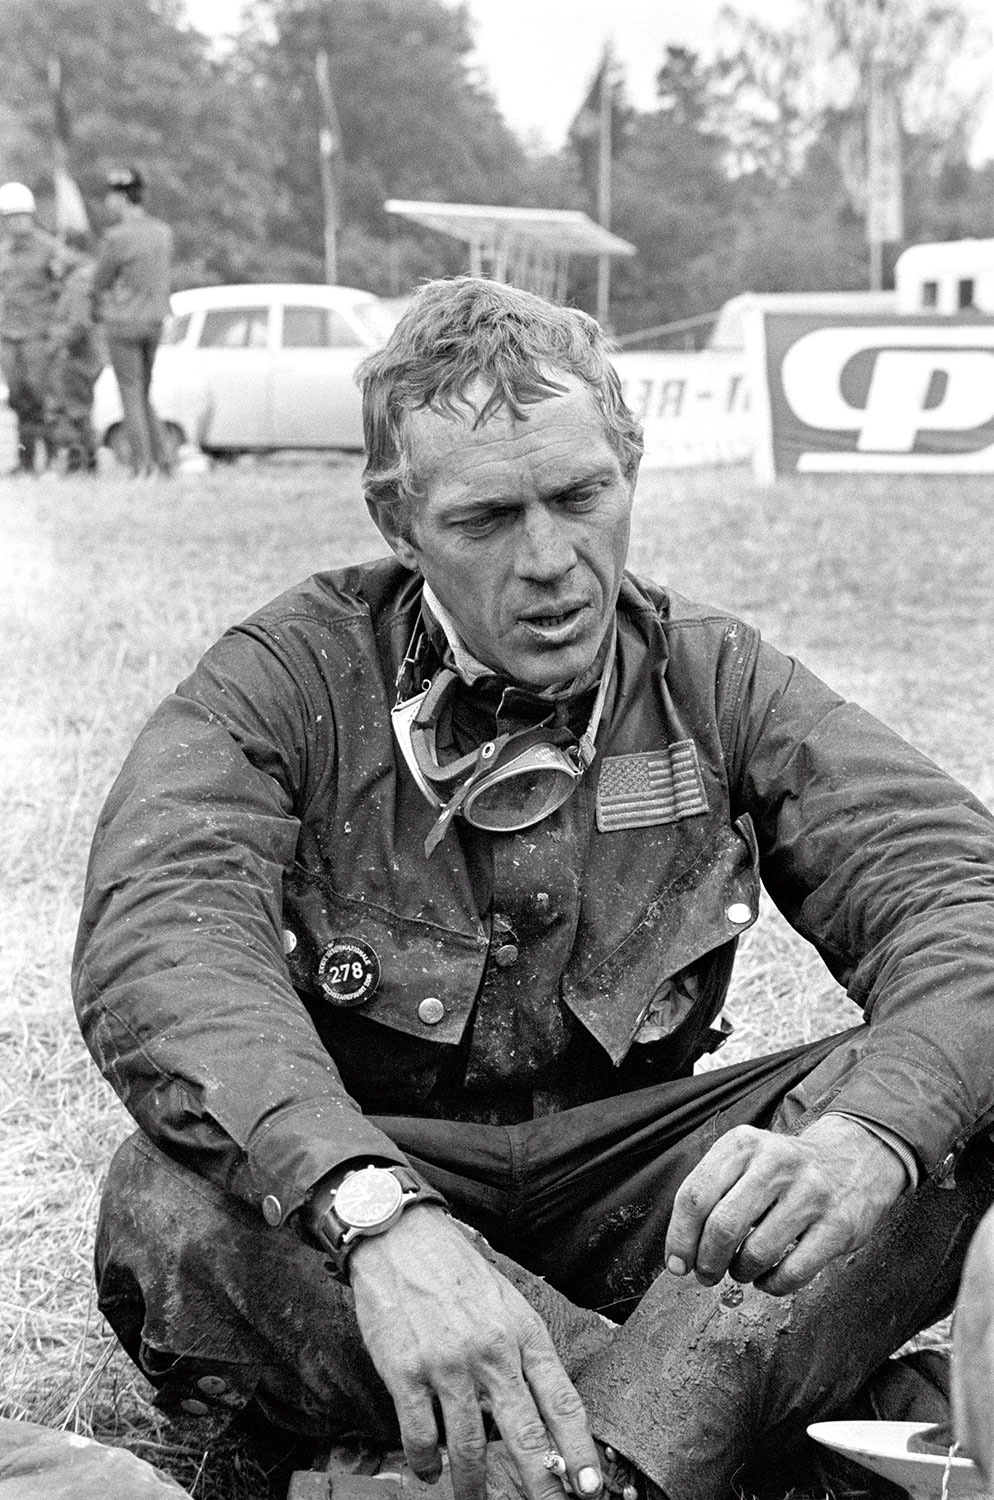 Steve McQueen resting after his run out on the 1964 ISDT track. Each evening after the race (300km on average, on terrible paths), the runners used to collapse on the grass, covered in mud and oil. On his wrist visible is the Hanhart 417 ES (Photo by Francois Gragnon / Paris Match via Getty Images)